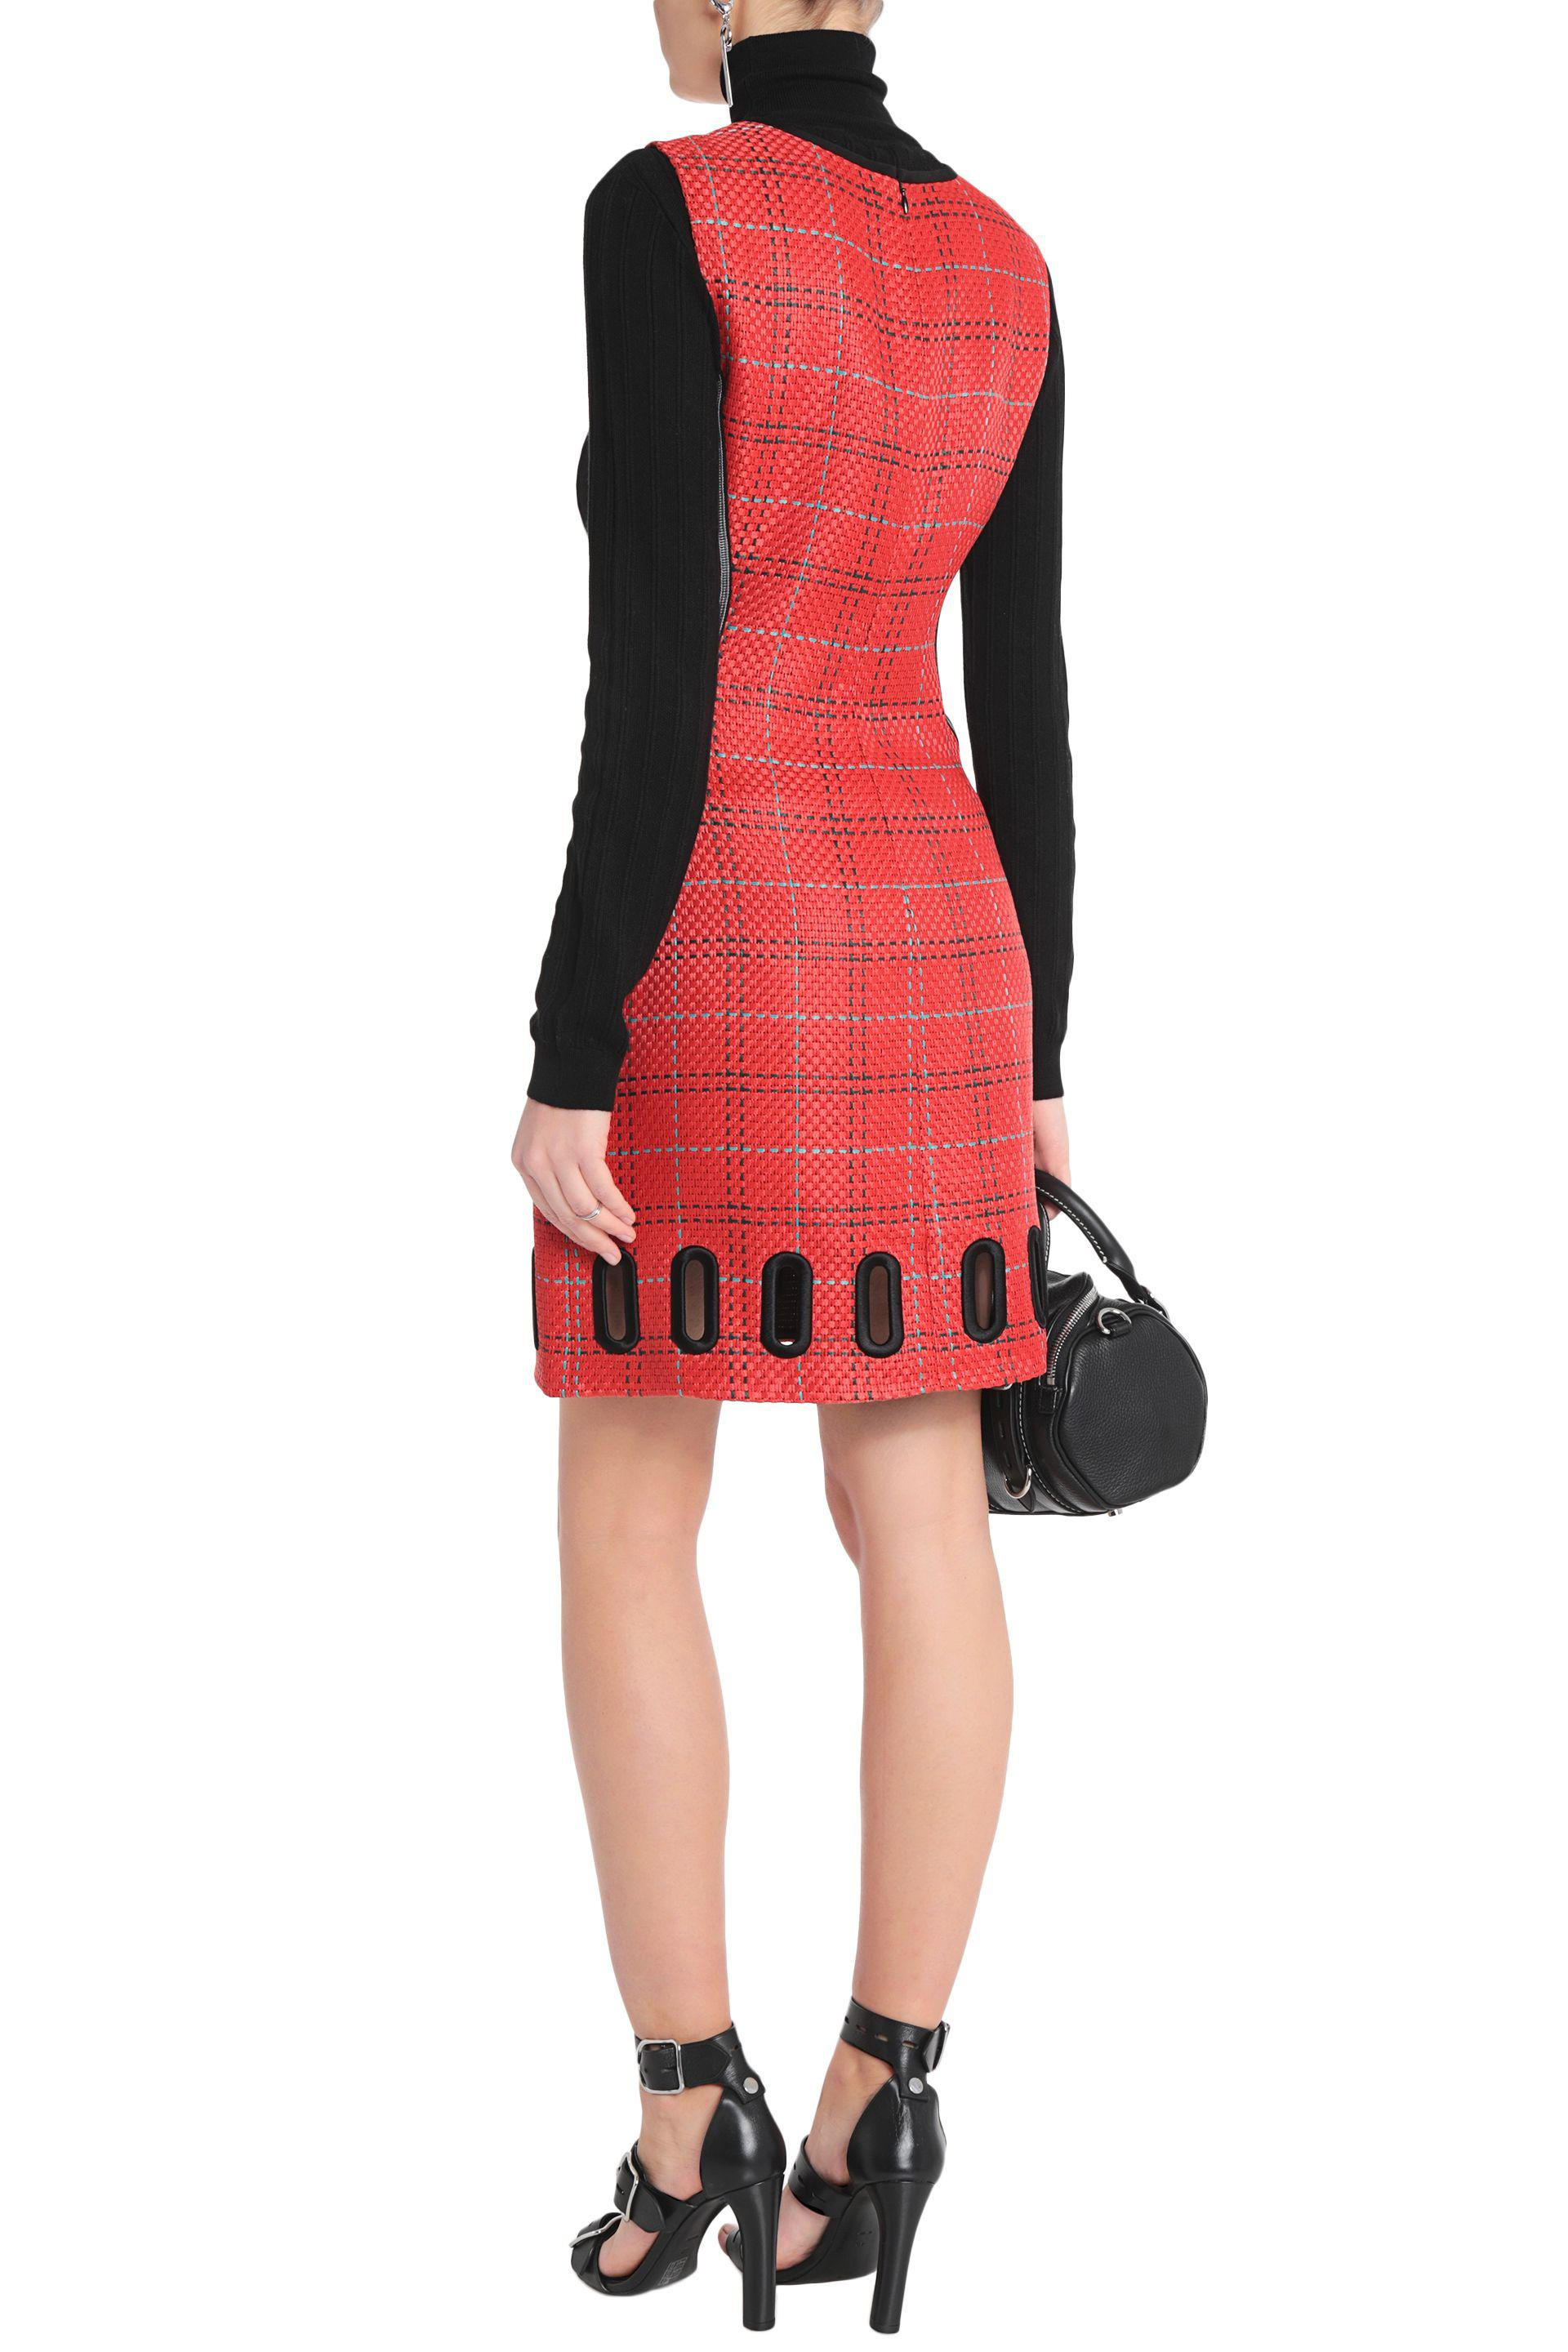 3.1 Phillip Lim Woman Cutout Paneled Basketweave Jacquard Dress Red Size 2 3.1 Phillip Lim NdIlEvvZV